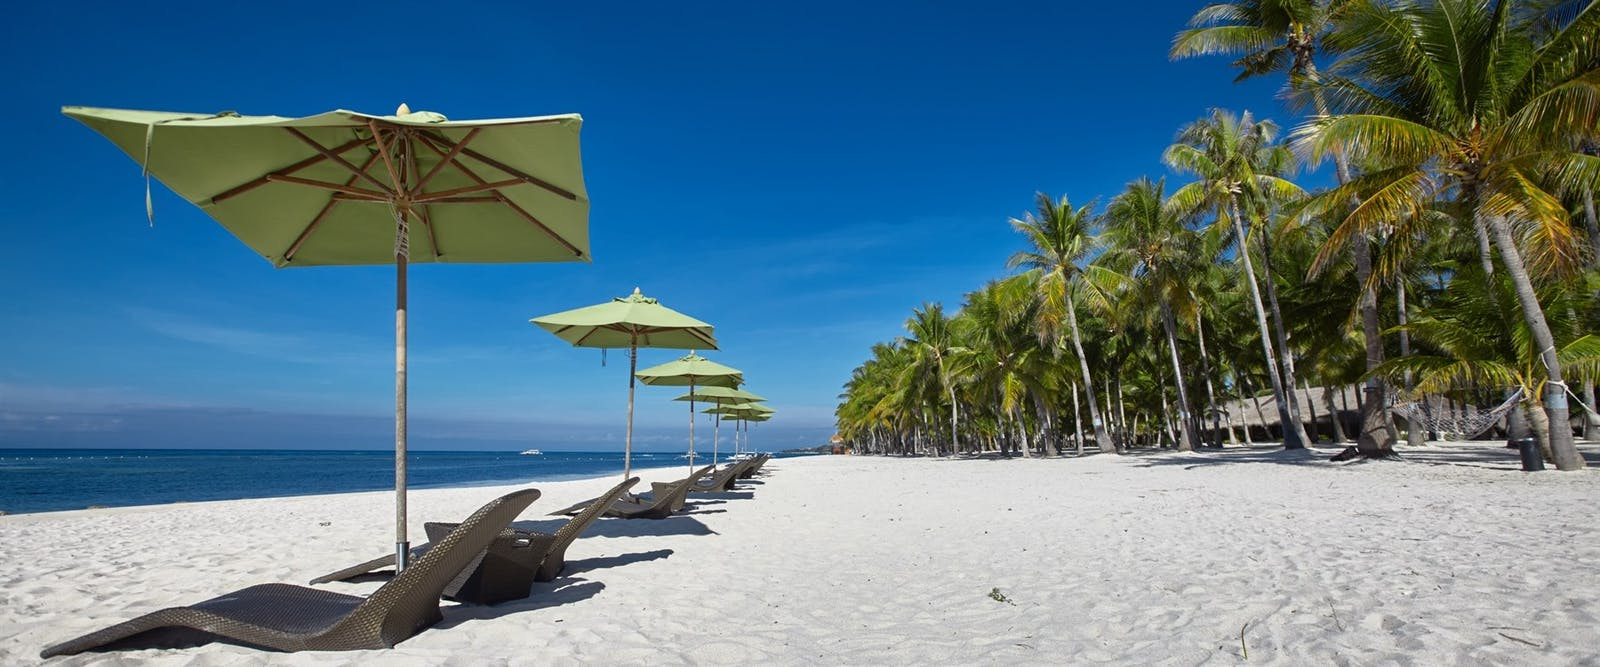 Beachfront area at South Palms Resort, Bohol, Philippenes